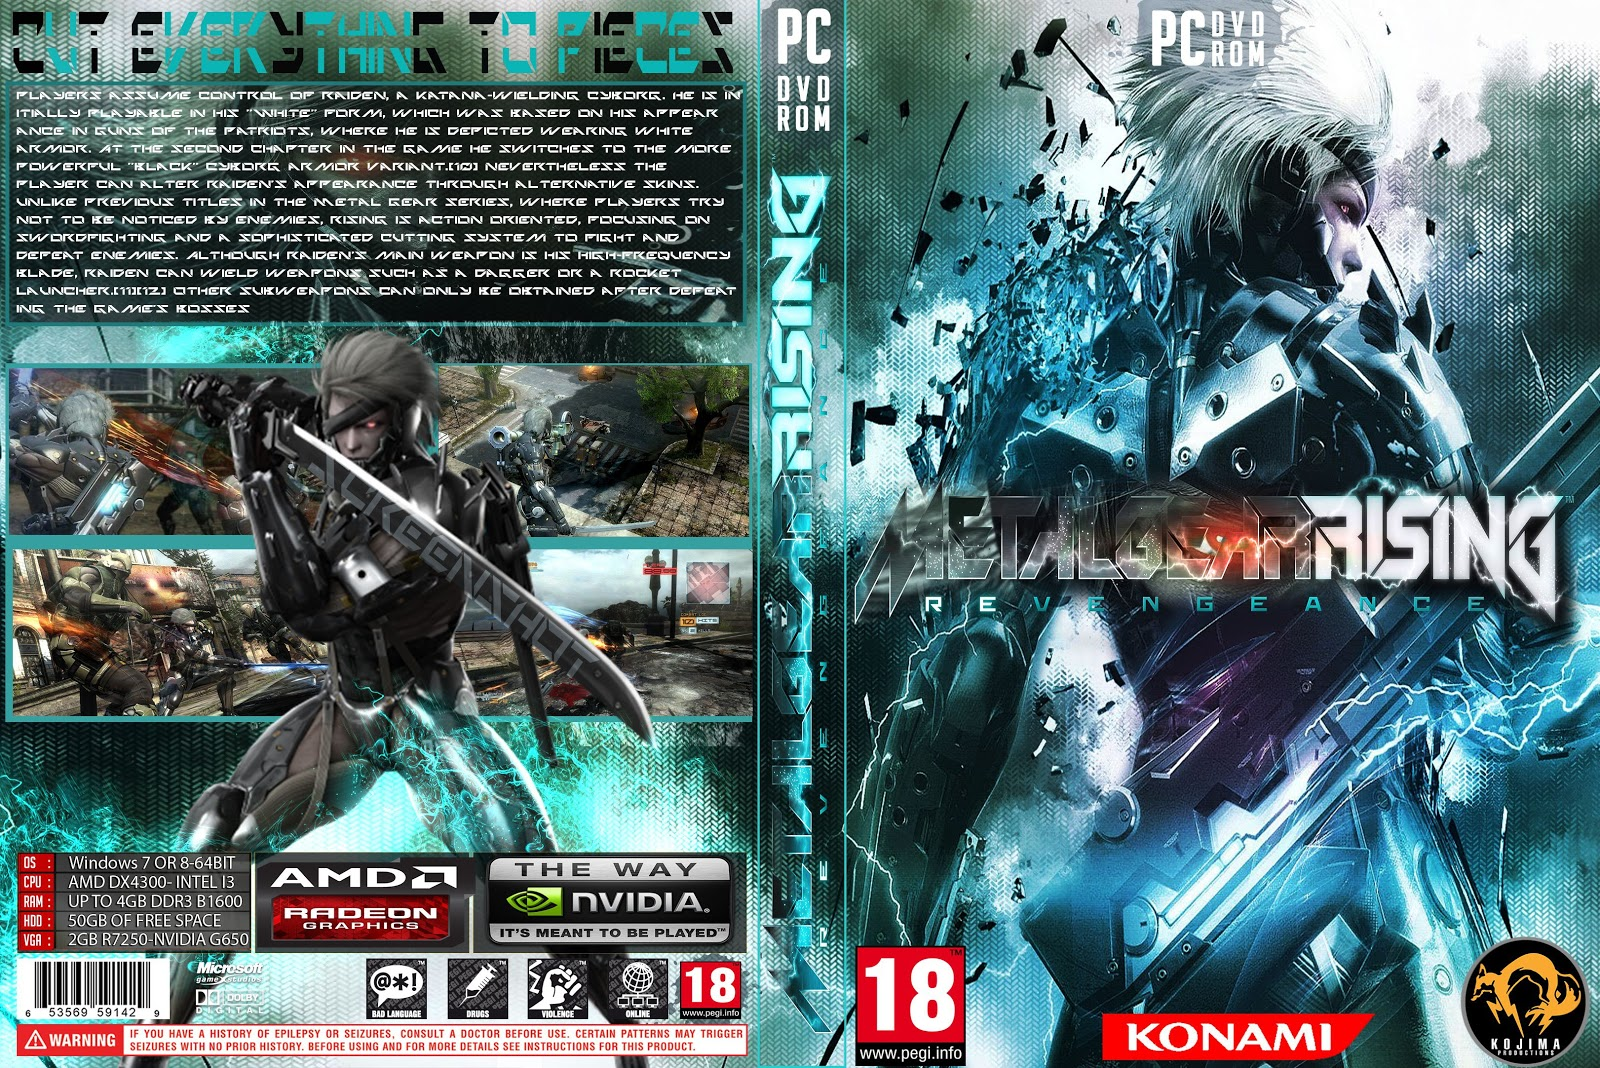 Capa Metal Gear Rising Revengeance PCMetal Gear Rising Revengeance Cover Ps3